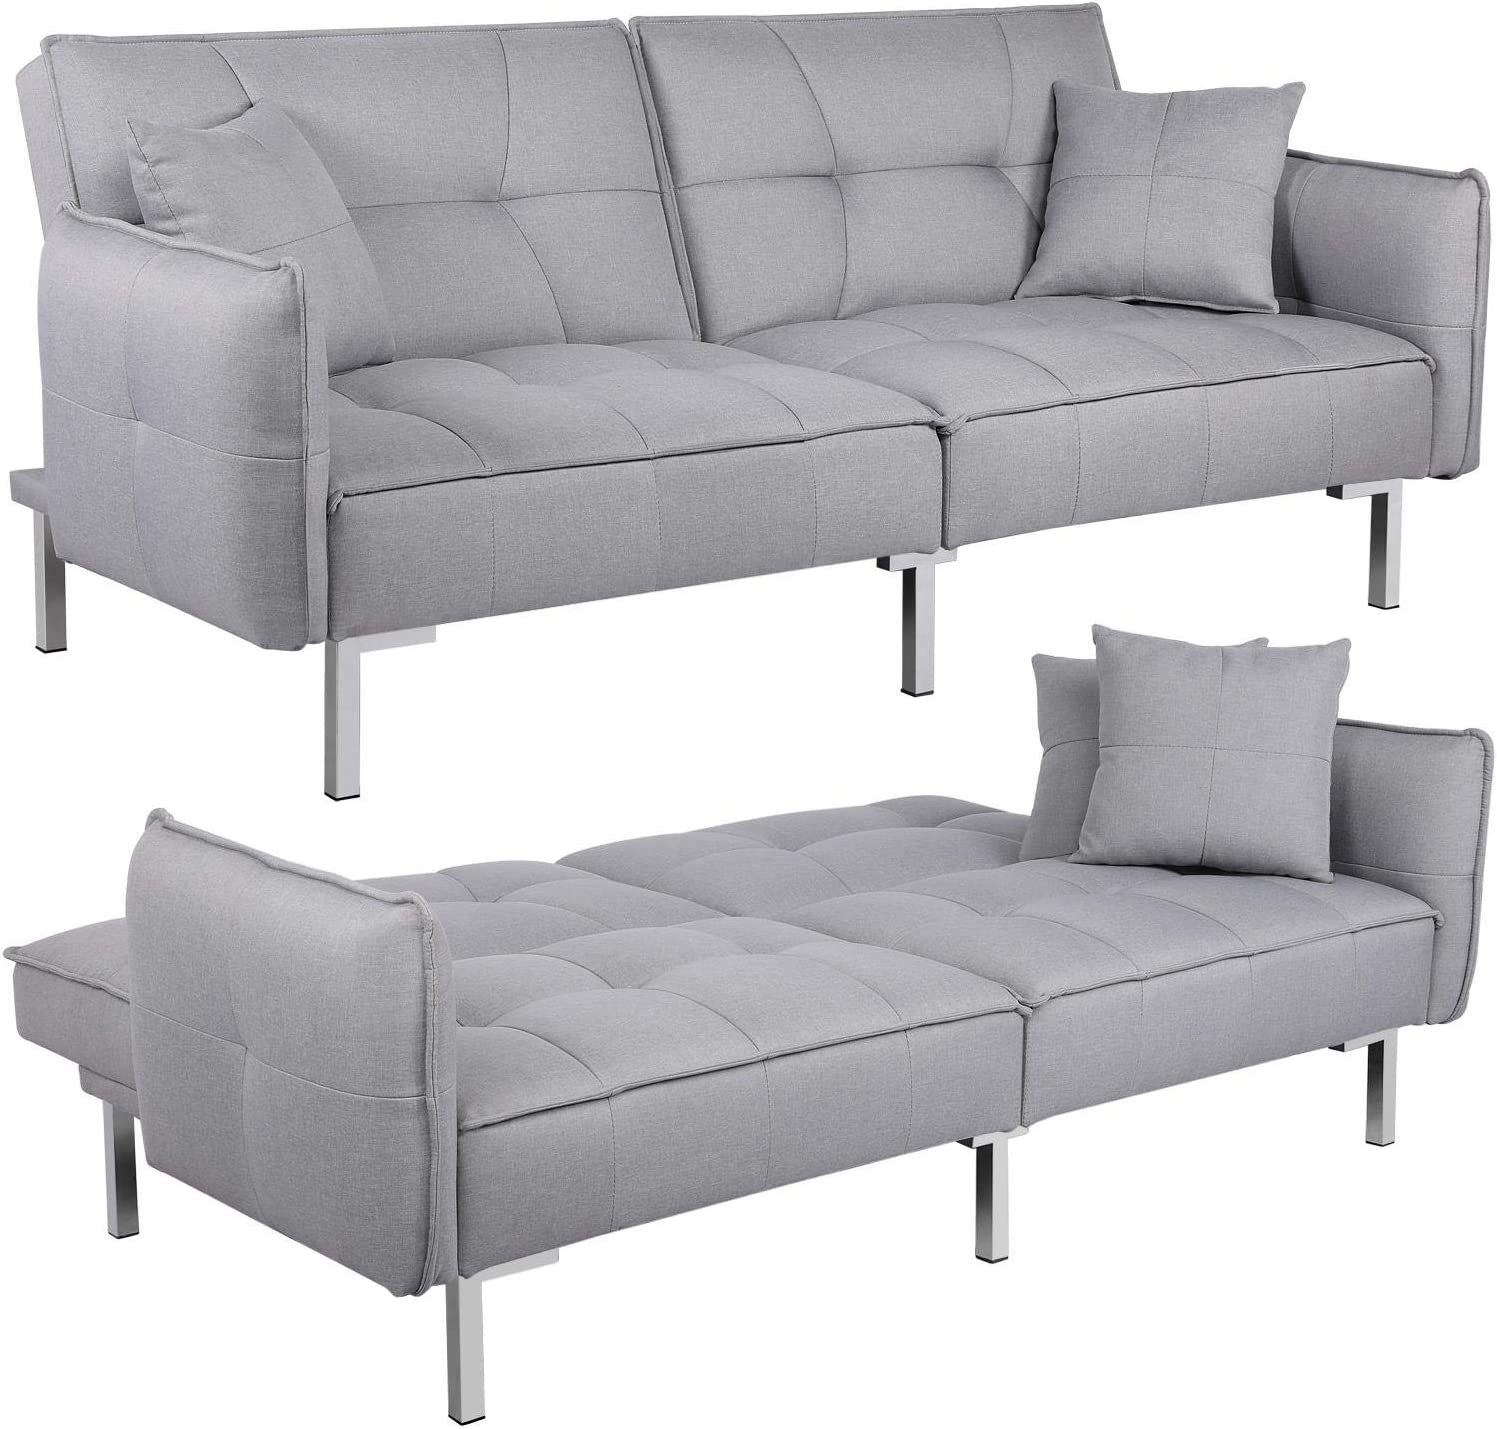 Yaheetech Fabric Sofa Bed 9 Seater Click Clack Sofa Couch Recliner Settee  for Living Room/Bedroom with Arms&9 Cushions Grey